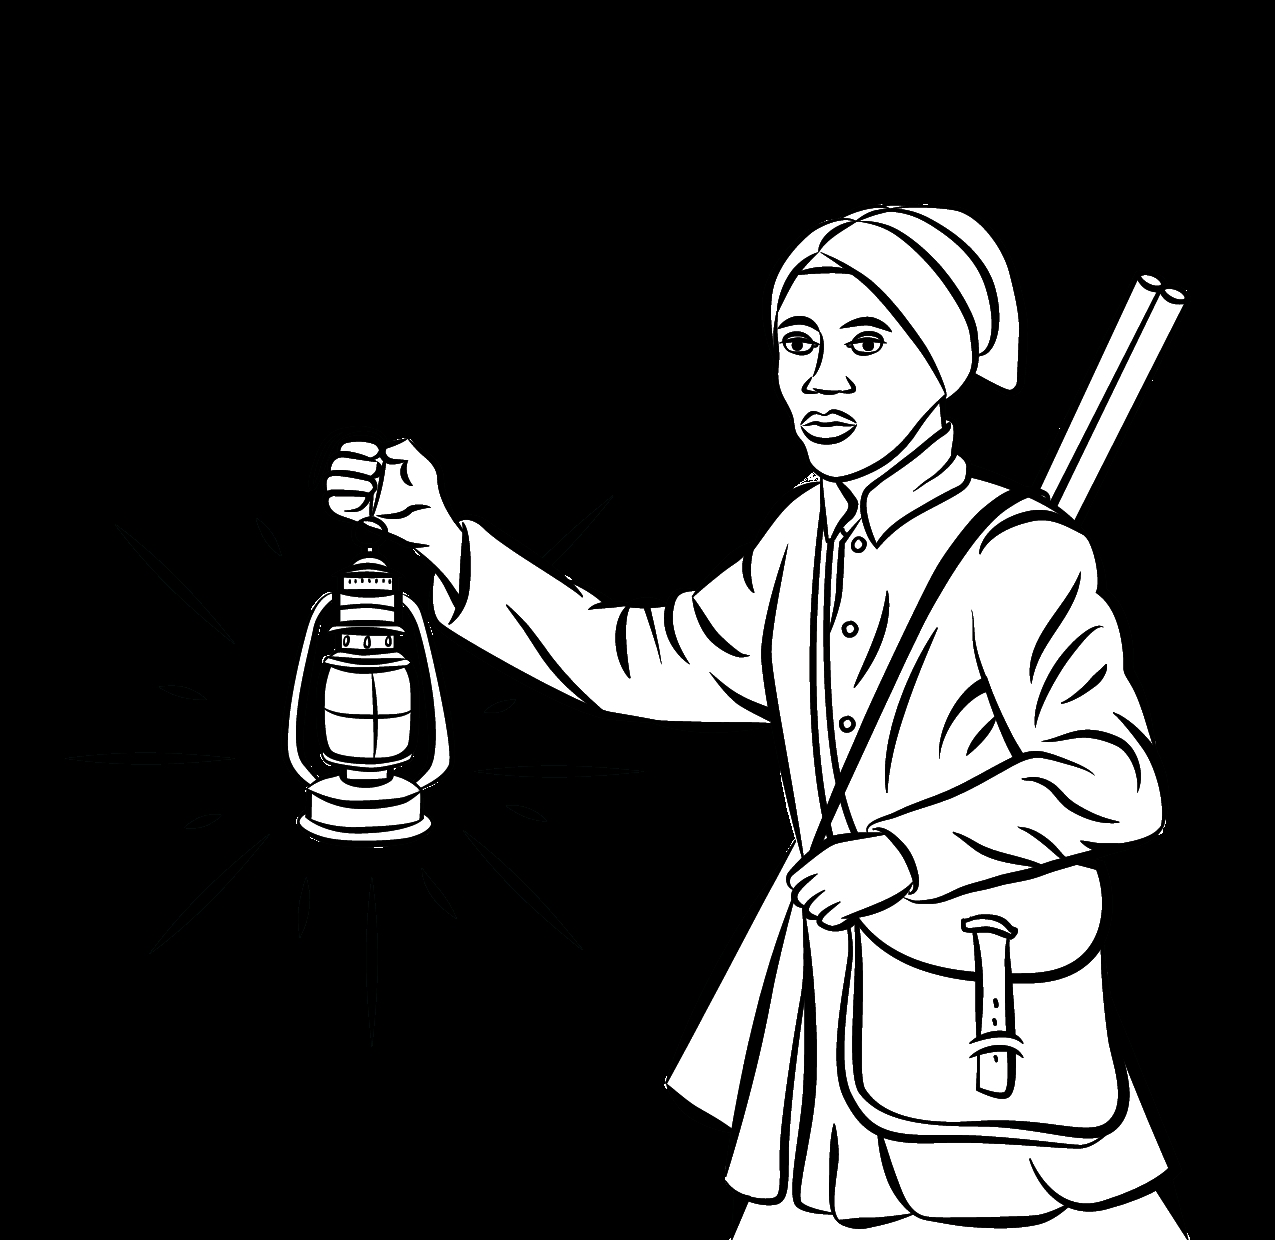 harriet tubman coloring page - harriet tubman coloring sheet sketch templates